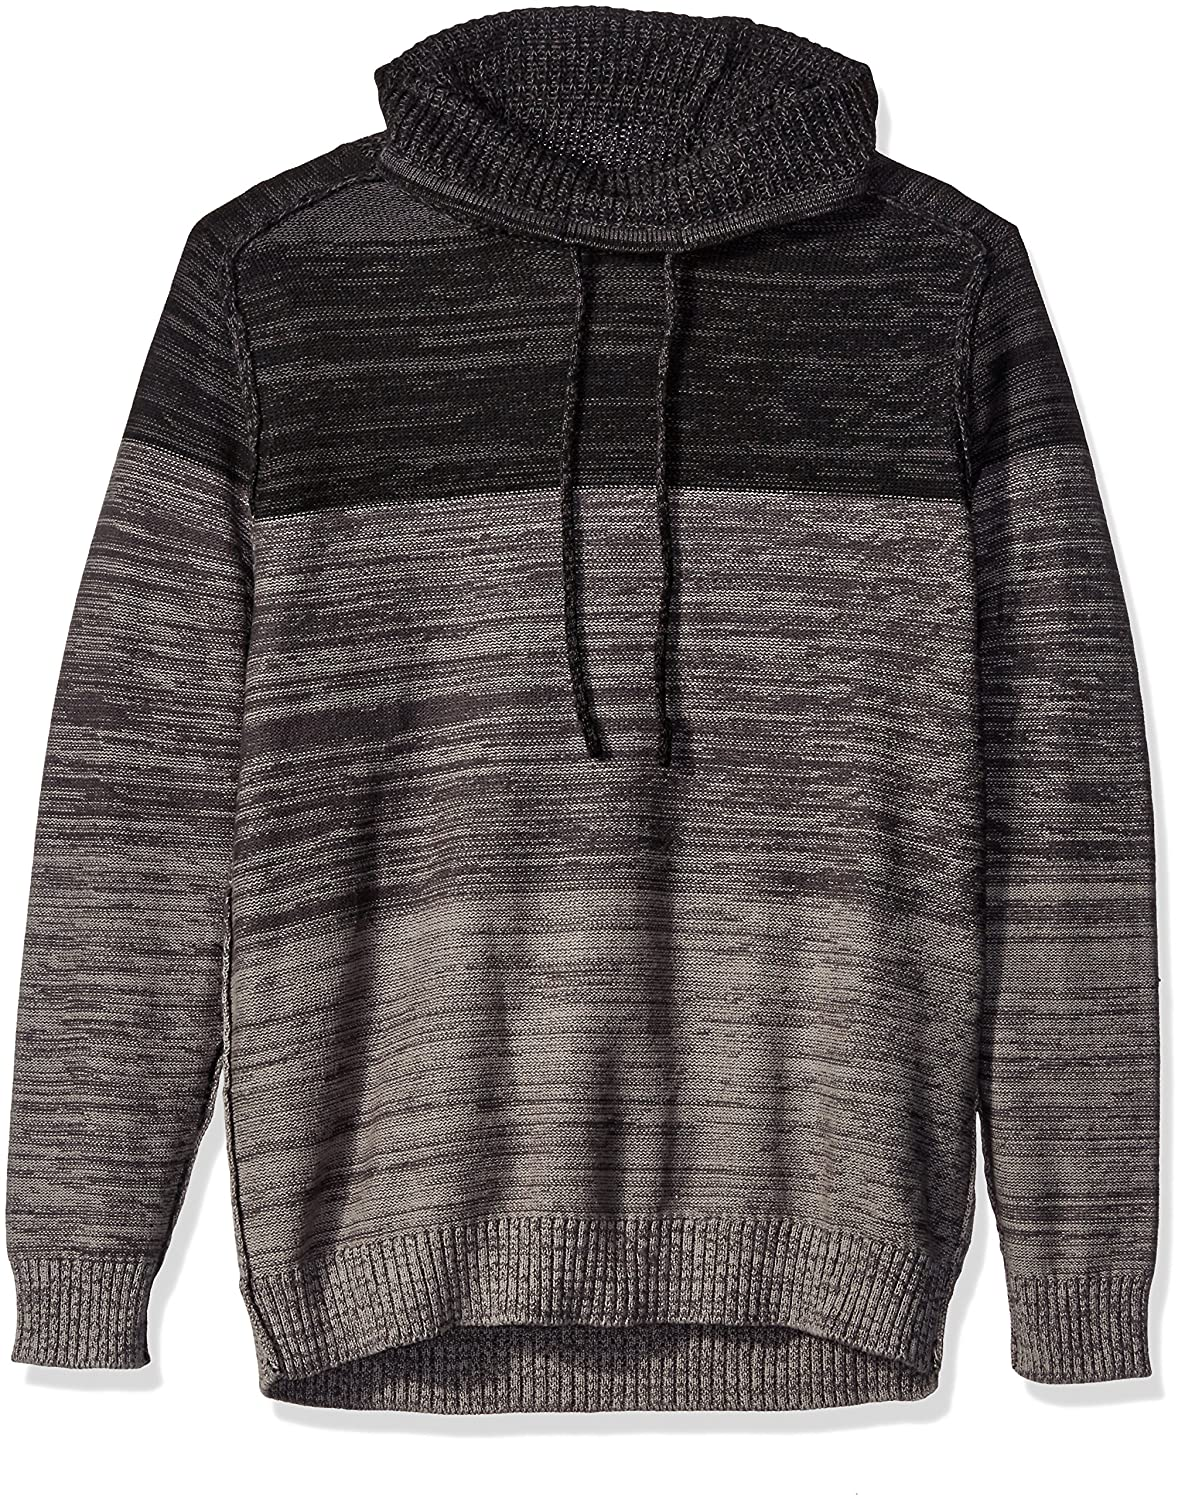 Blizzard Bay Men's Color Block Cowl Neck Sweater, Grey/Black Large Blizzard Bay Mens Apparel E60632